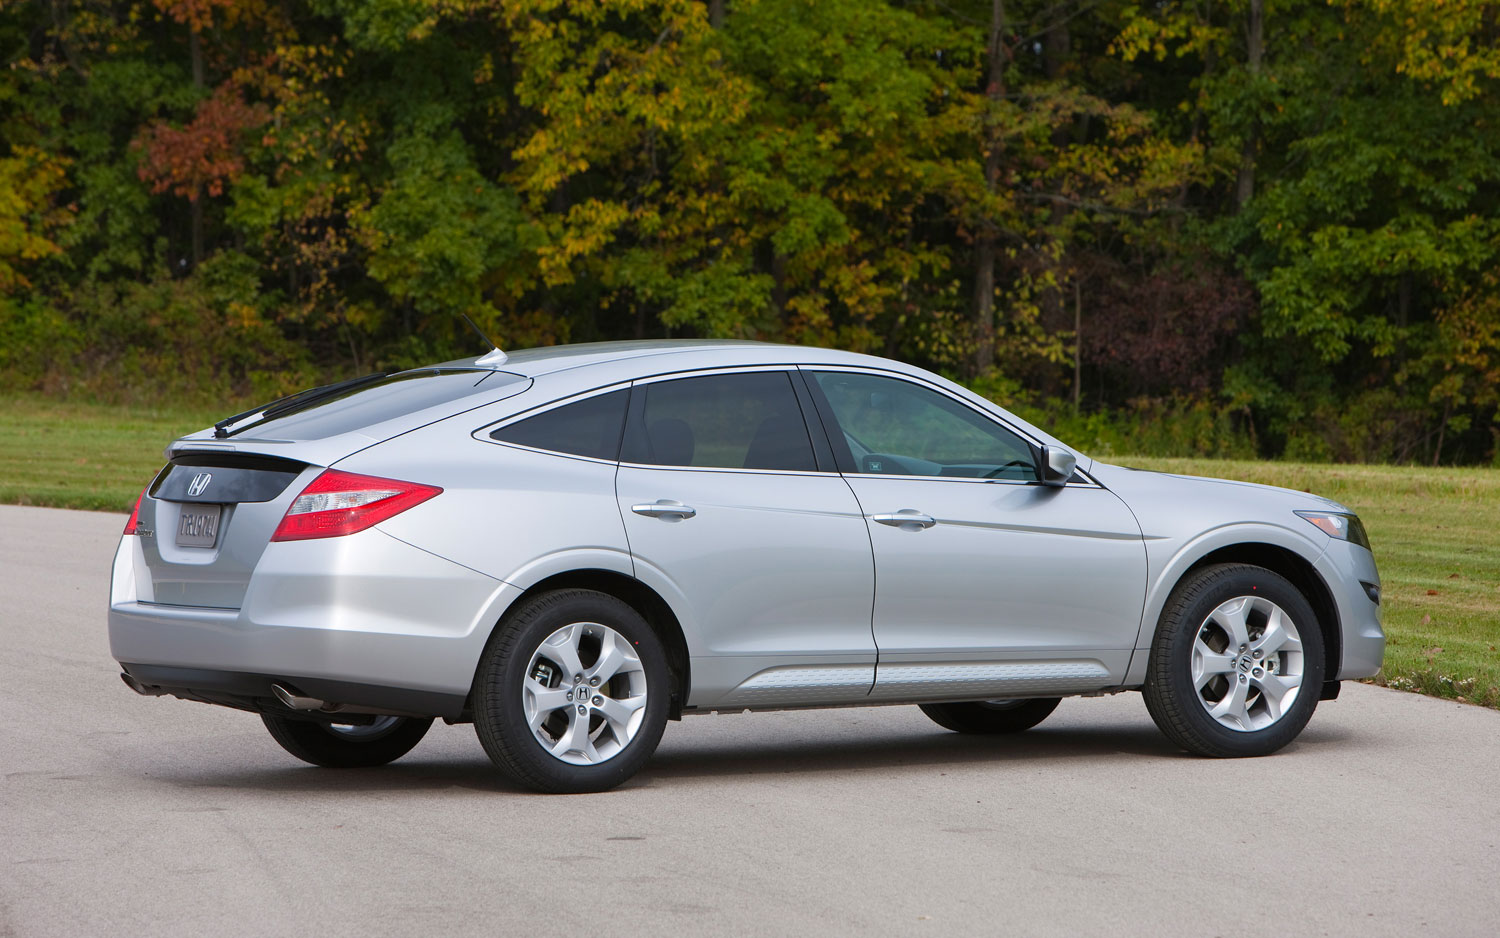 Name Change For 2012 Honda Crosstour Non Nav Models More